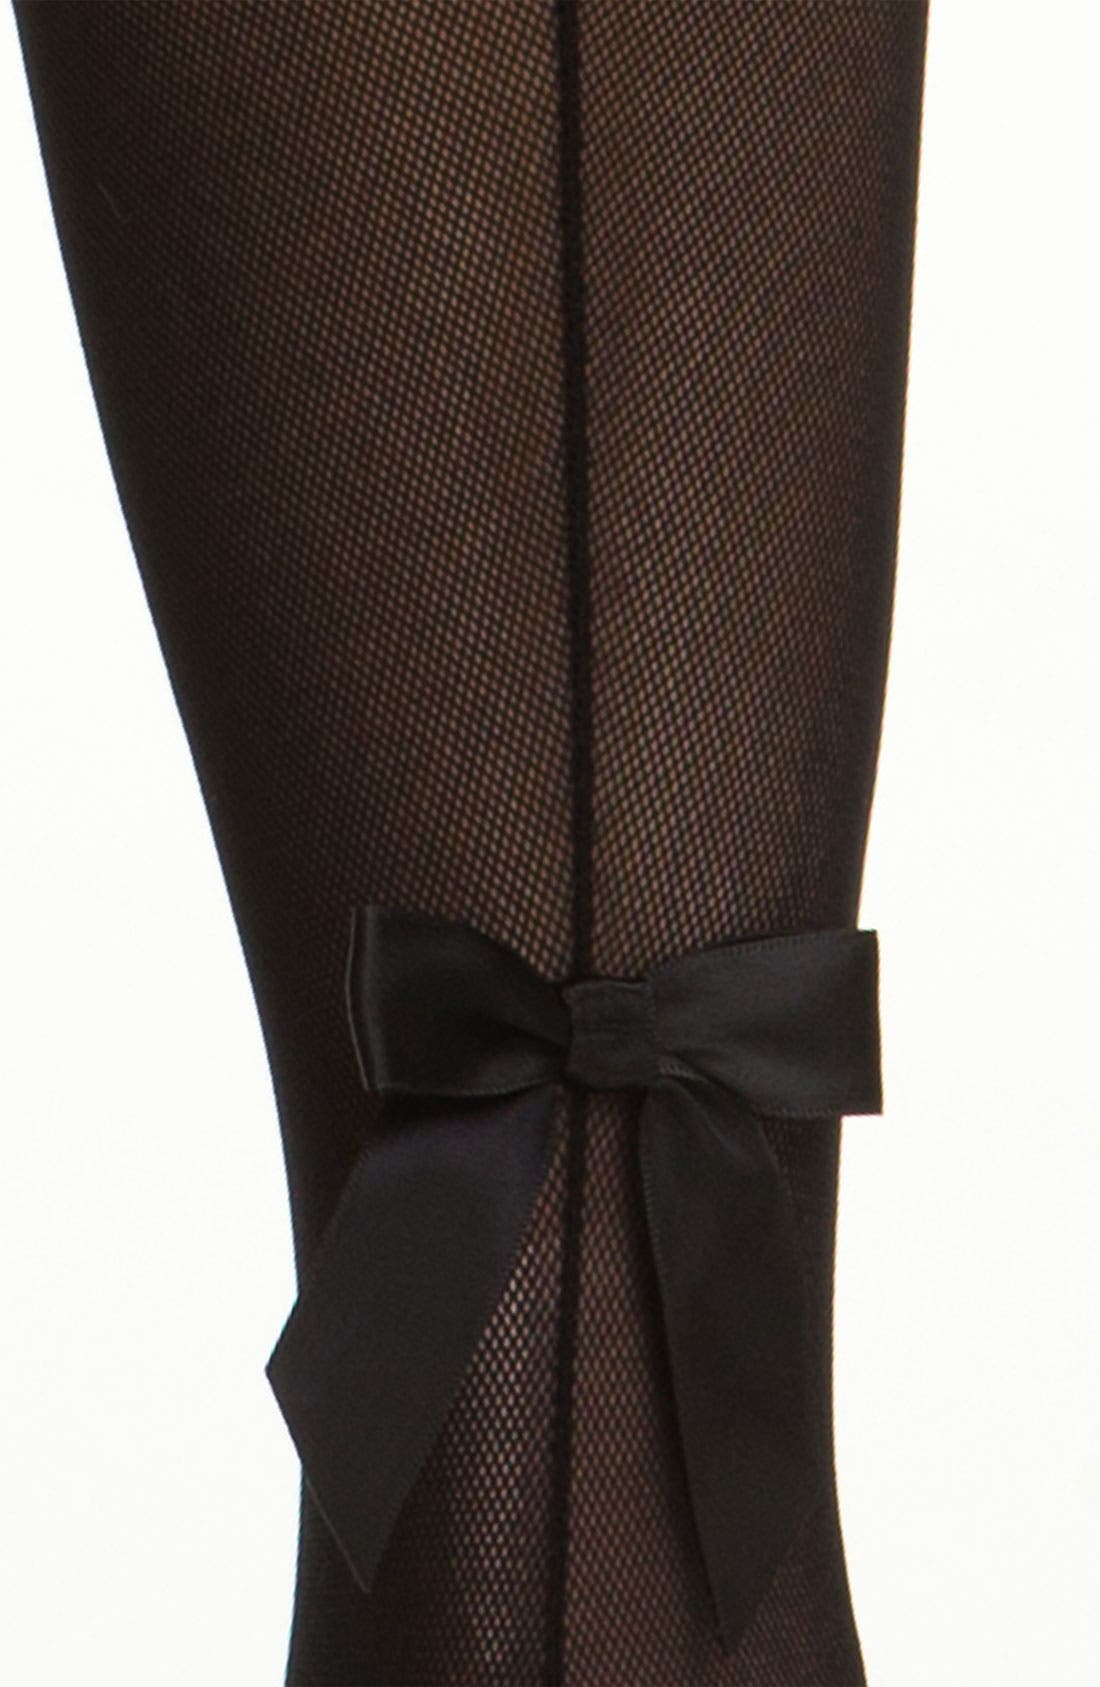 Alternate Image 2  - Pretty Polly Back Seam & Bow Tights (Nordstrom Exclusive)